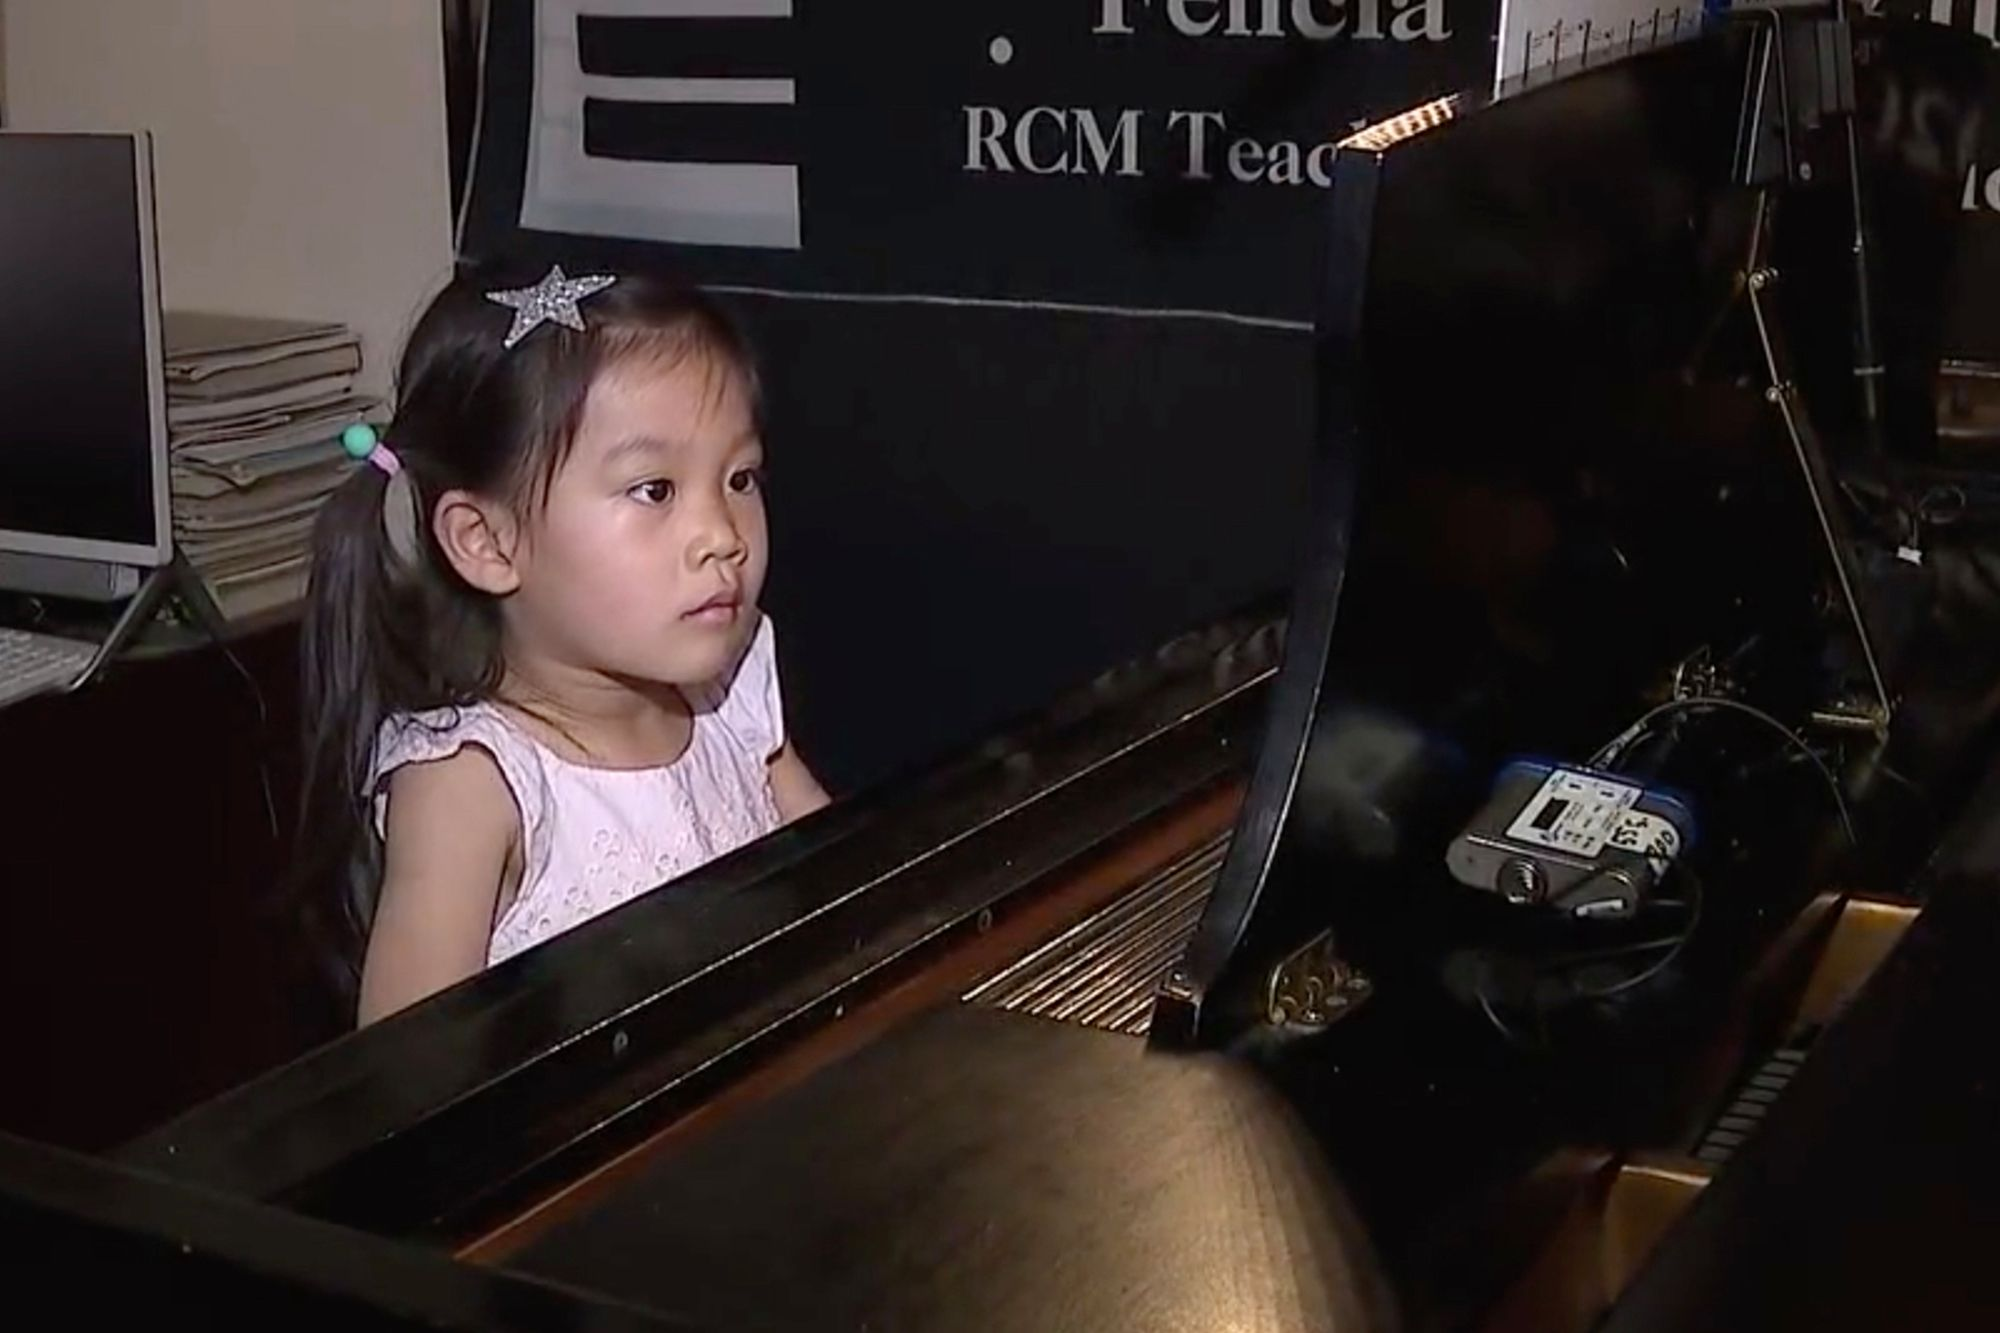 Meet 4-year-old Brigette Xie Who Plays Piano Like An Adult